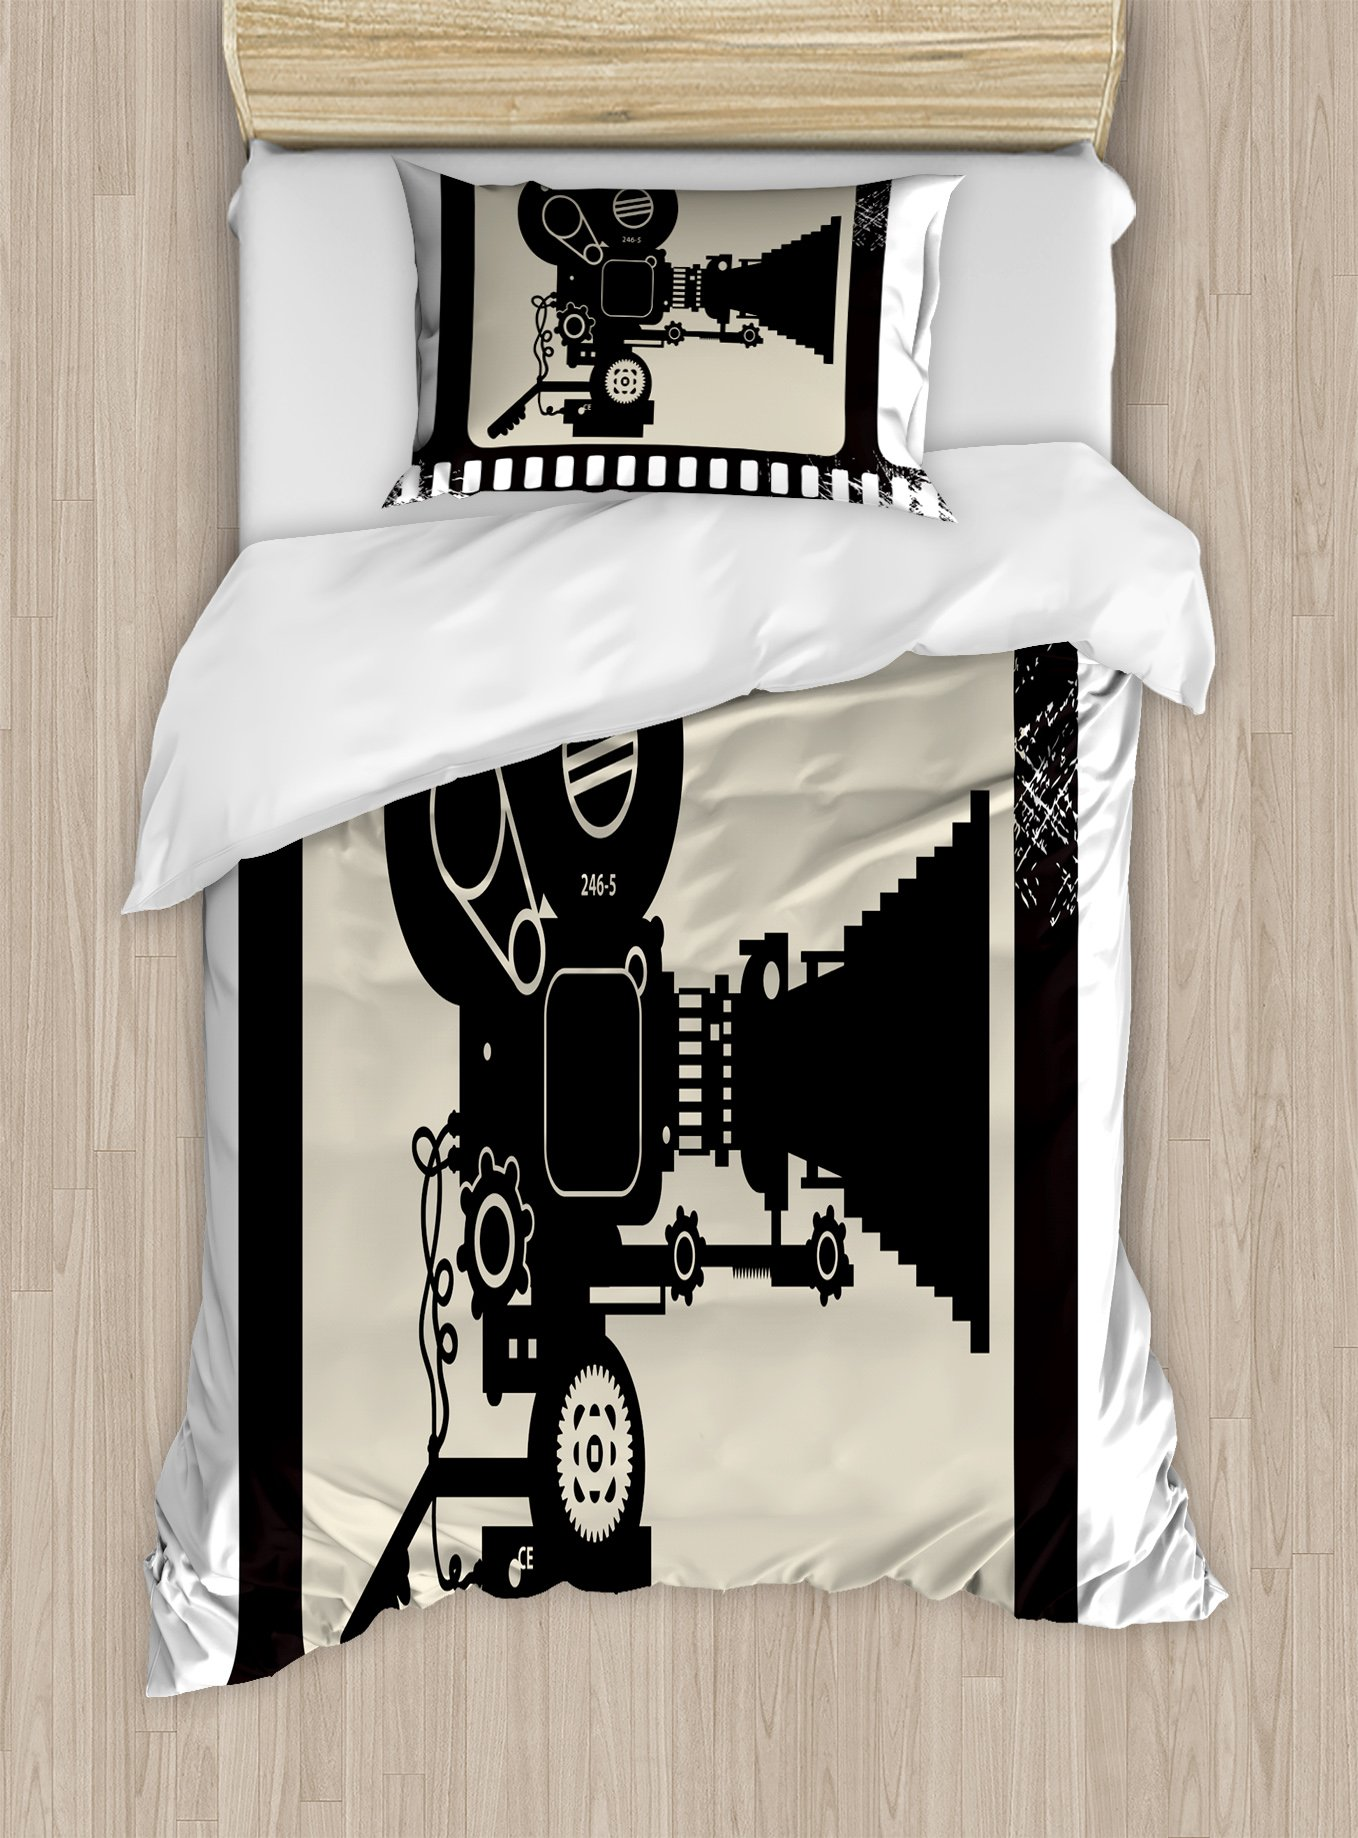 Ambesonne Movie Theater Twin Size Duvet Cover Set, Movie Frame Pattern with Silhouette of Movie Reels in a Projector, Decorative 2 Piece Bedding Set with 1 Pillow Sham, Dark Taupe Beige Black